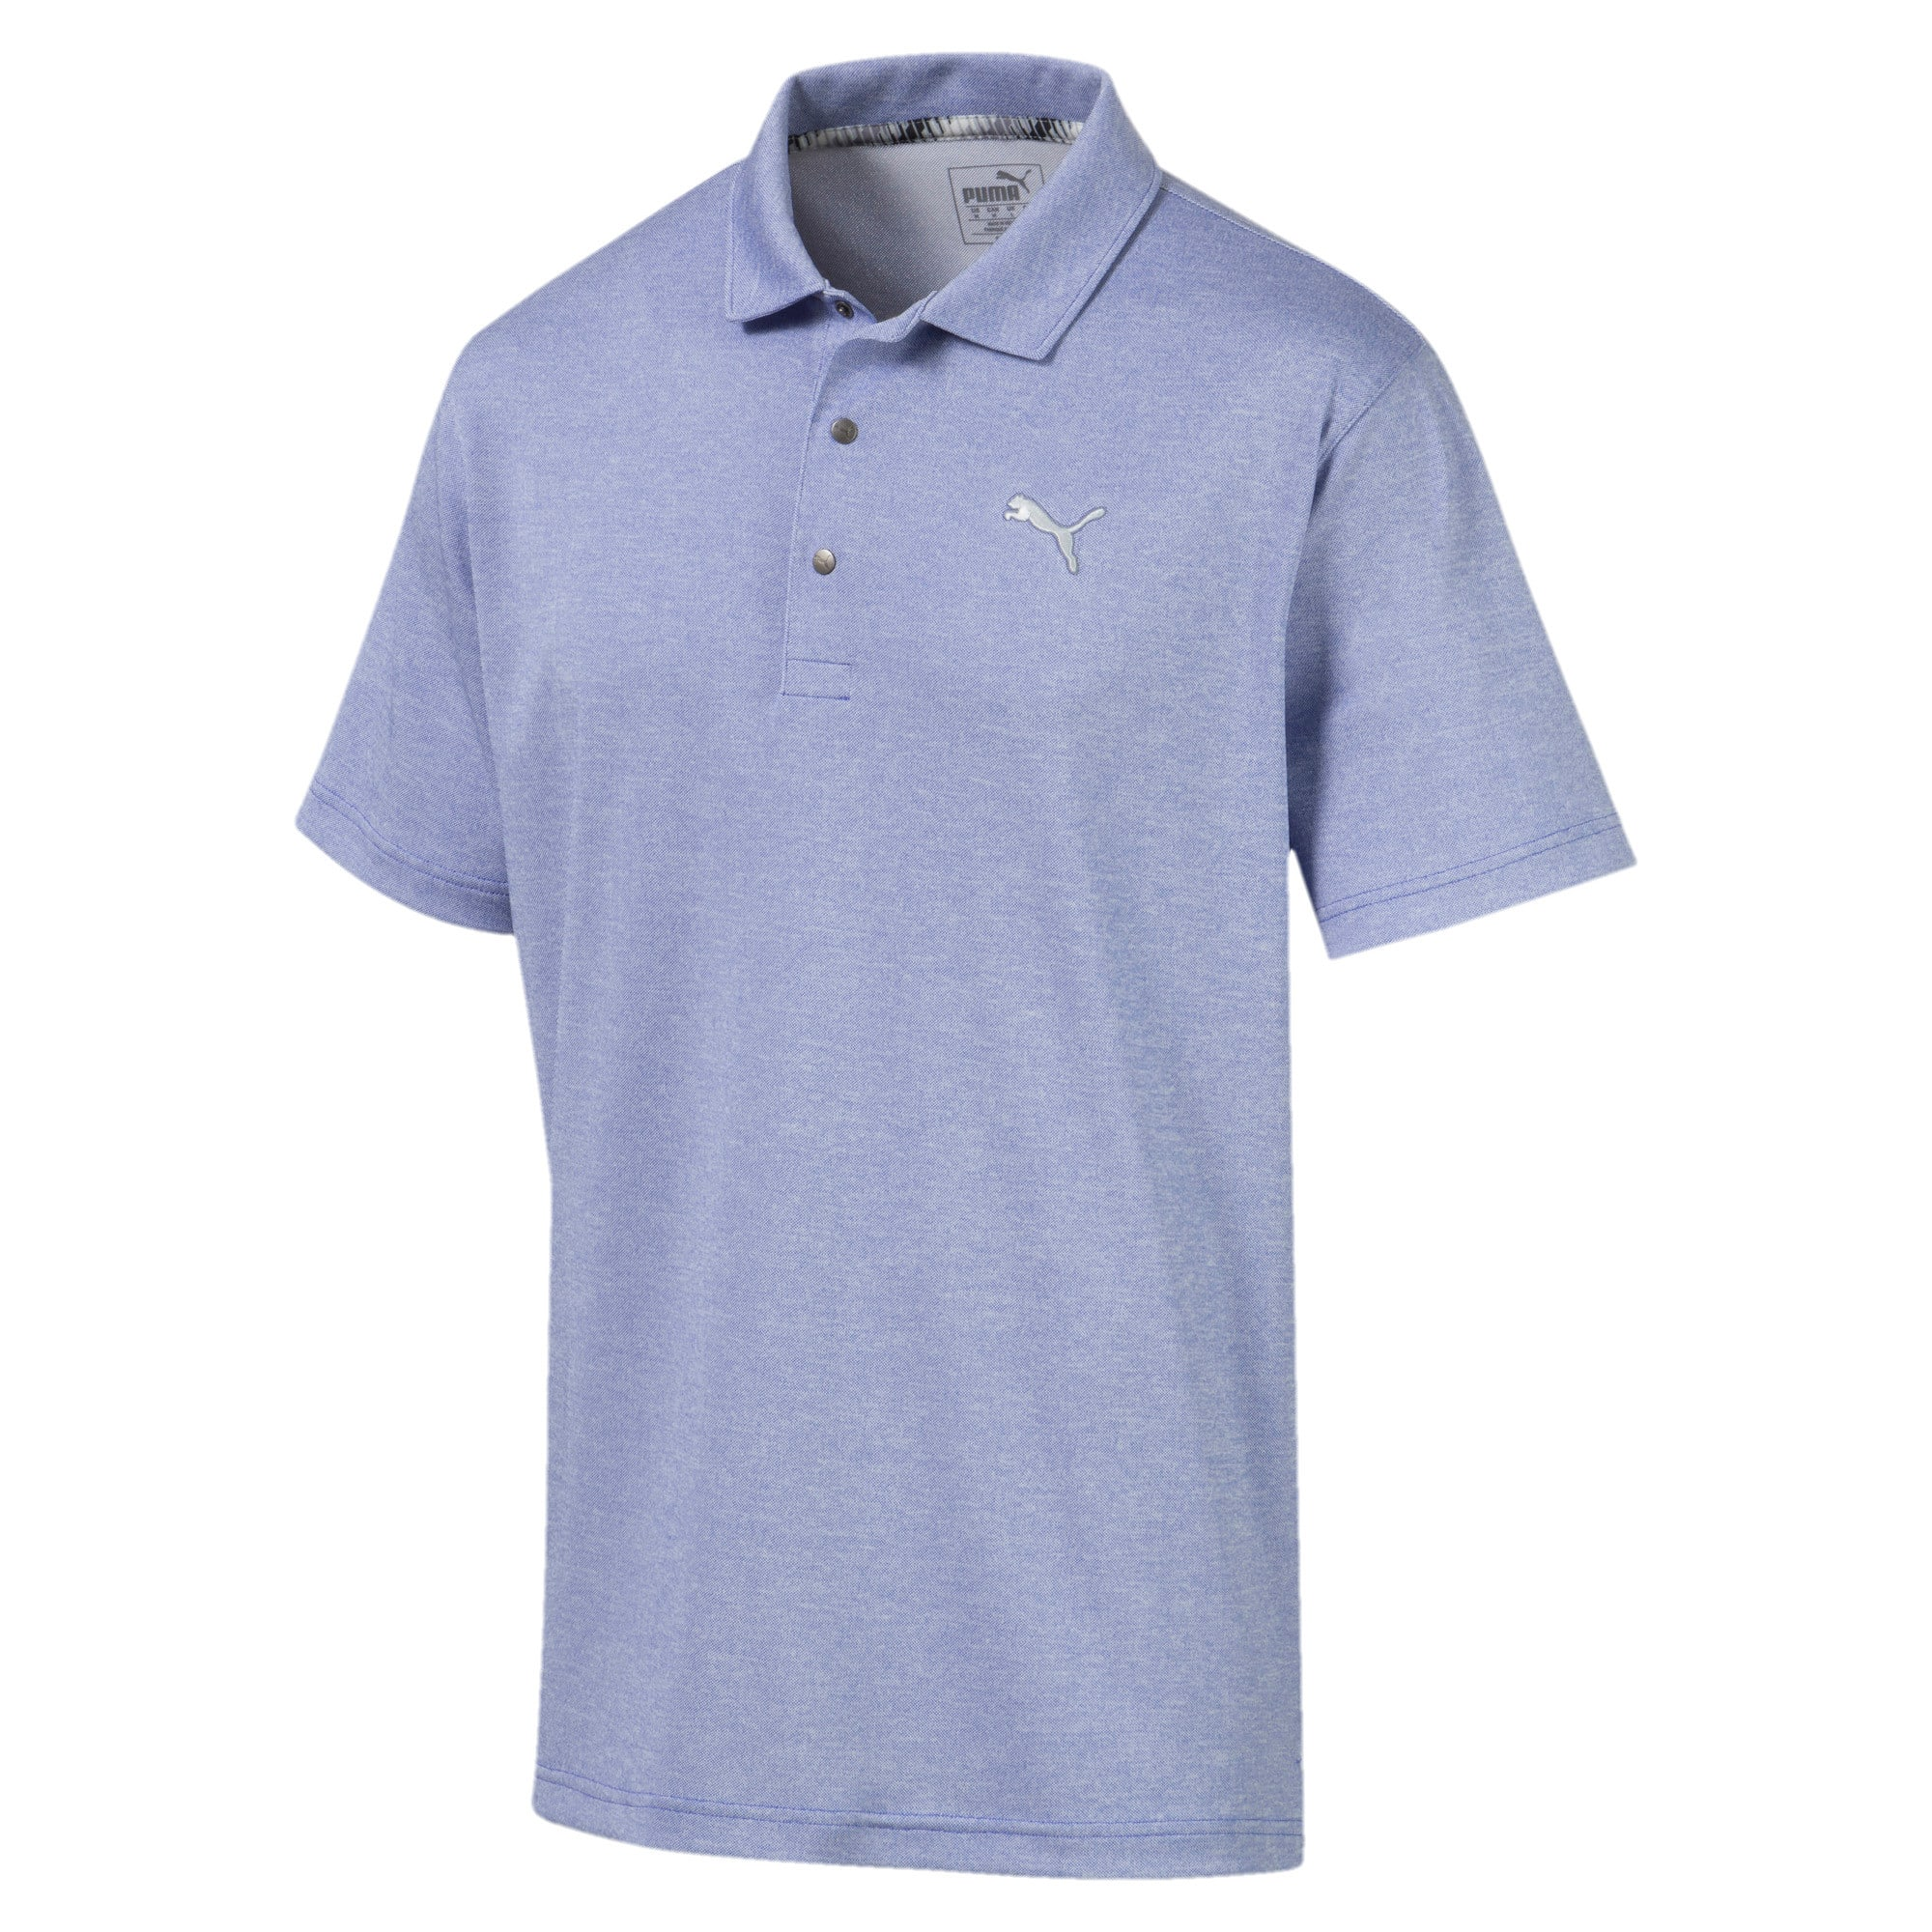 Thumbnail 4 of Grill to Green Men's Golf Polo, Dazzling Blue Heather, medium